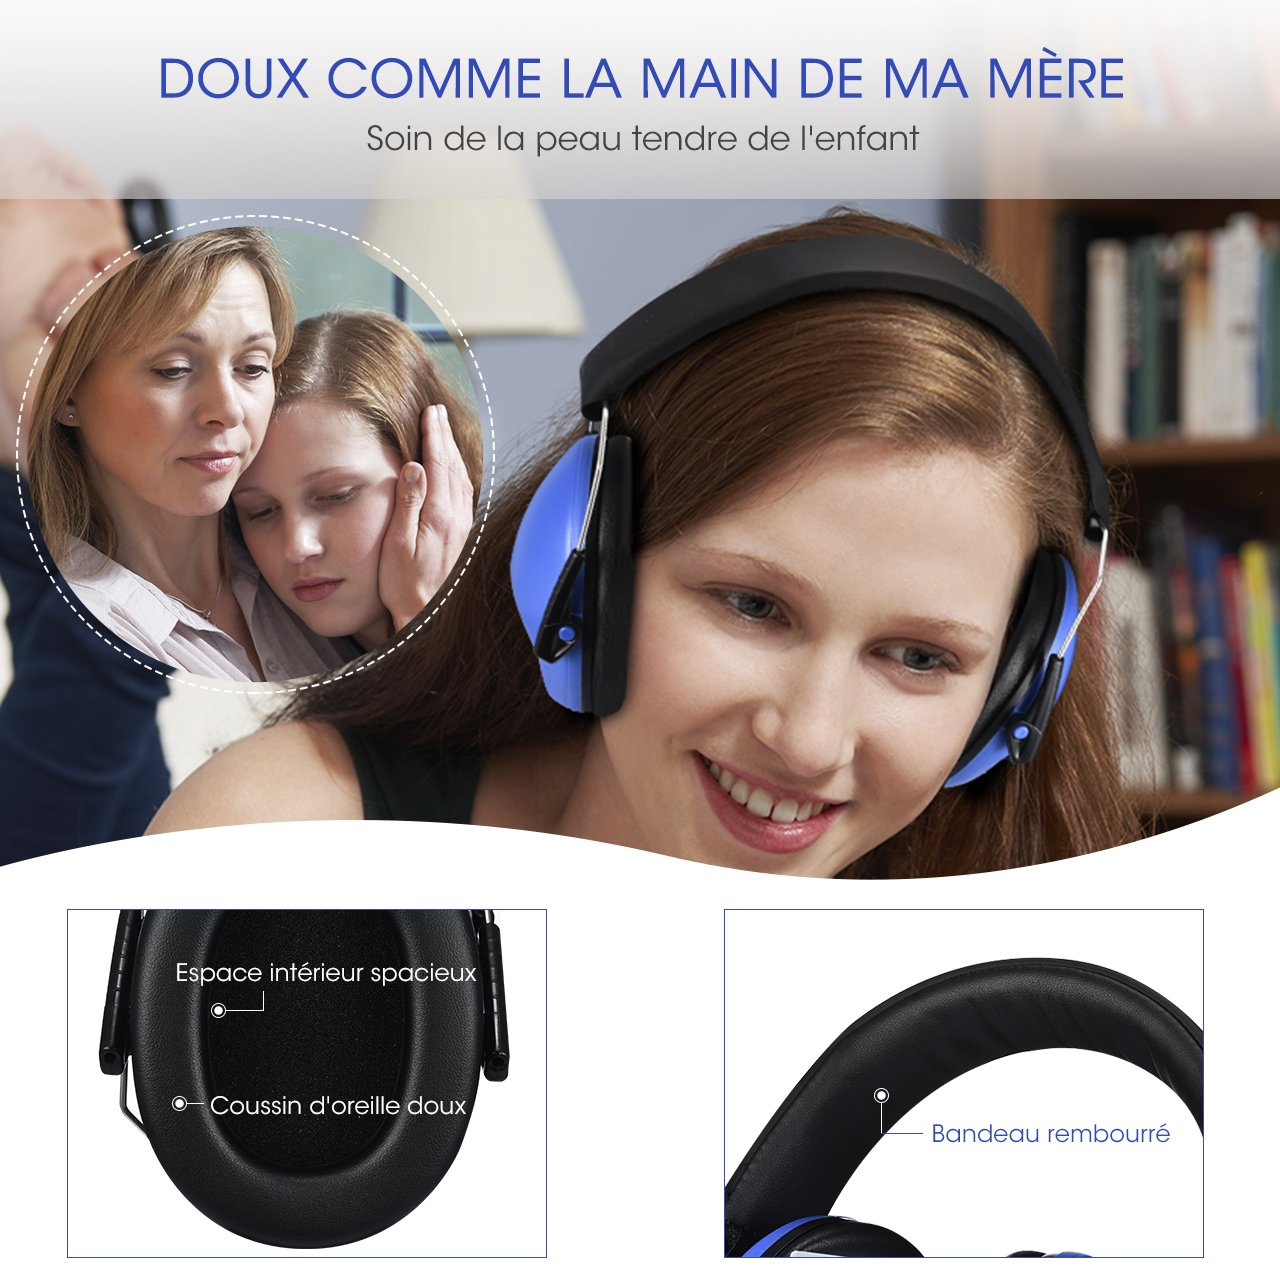 Hearing Protection with Adjustable Headband Mpow 068 Kids Earmuffs Comfortable Kids Safety Ear Muffs for Professional Soundproofing Noise Reduction 25dB NRR Ear Defenders Blue